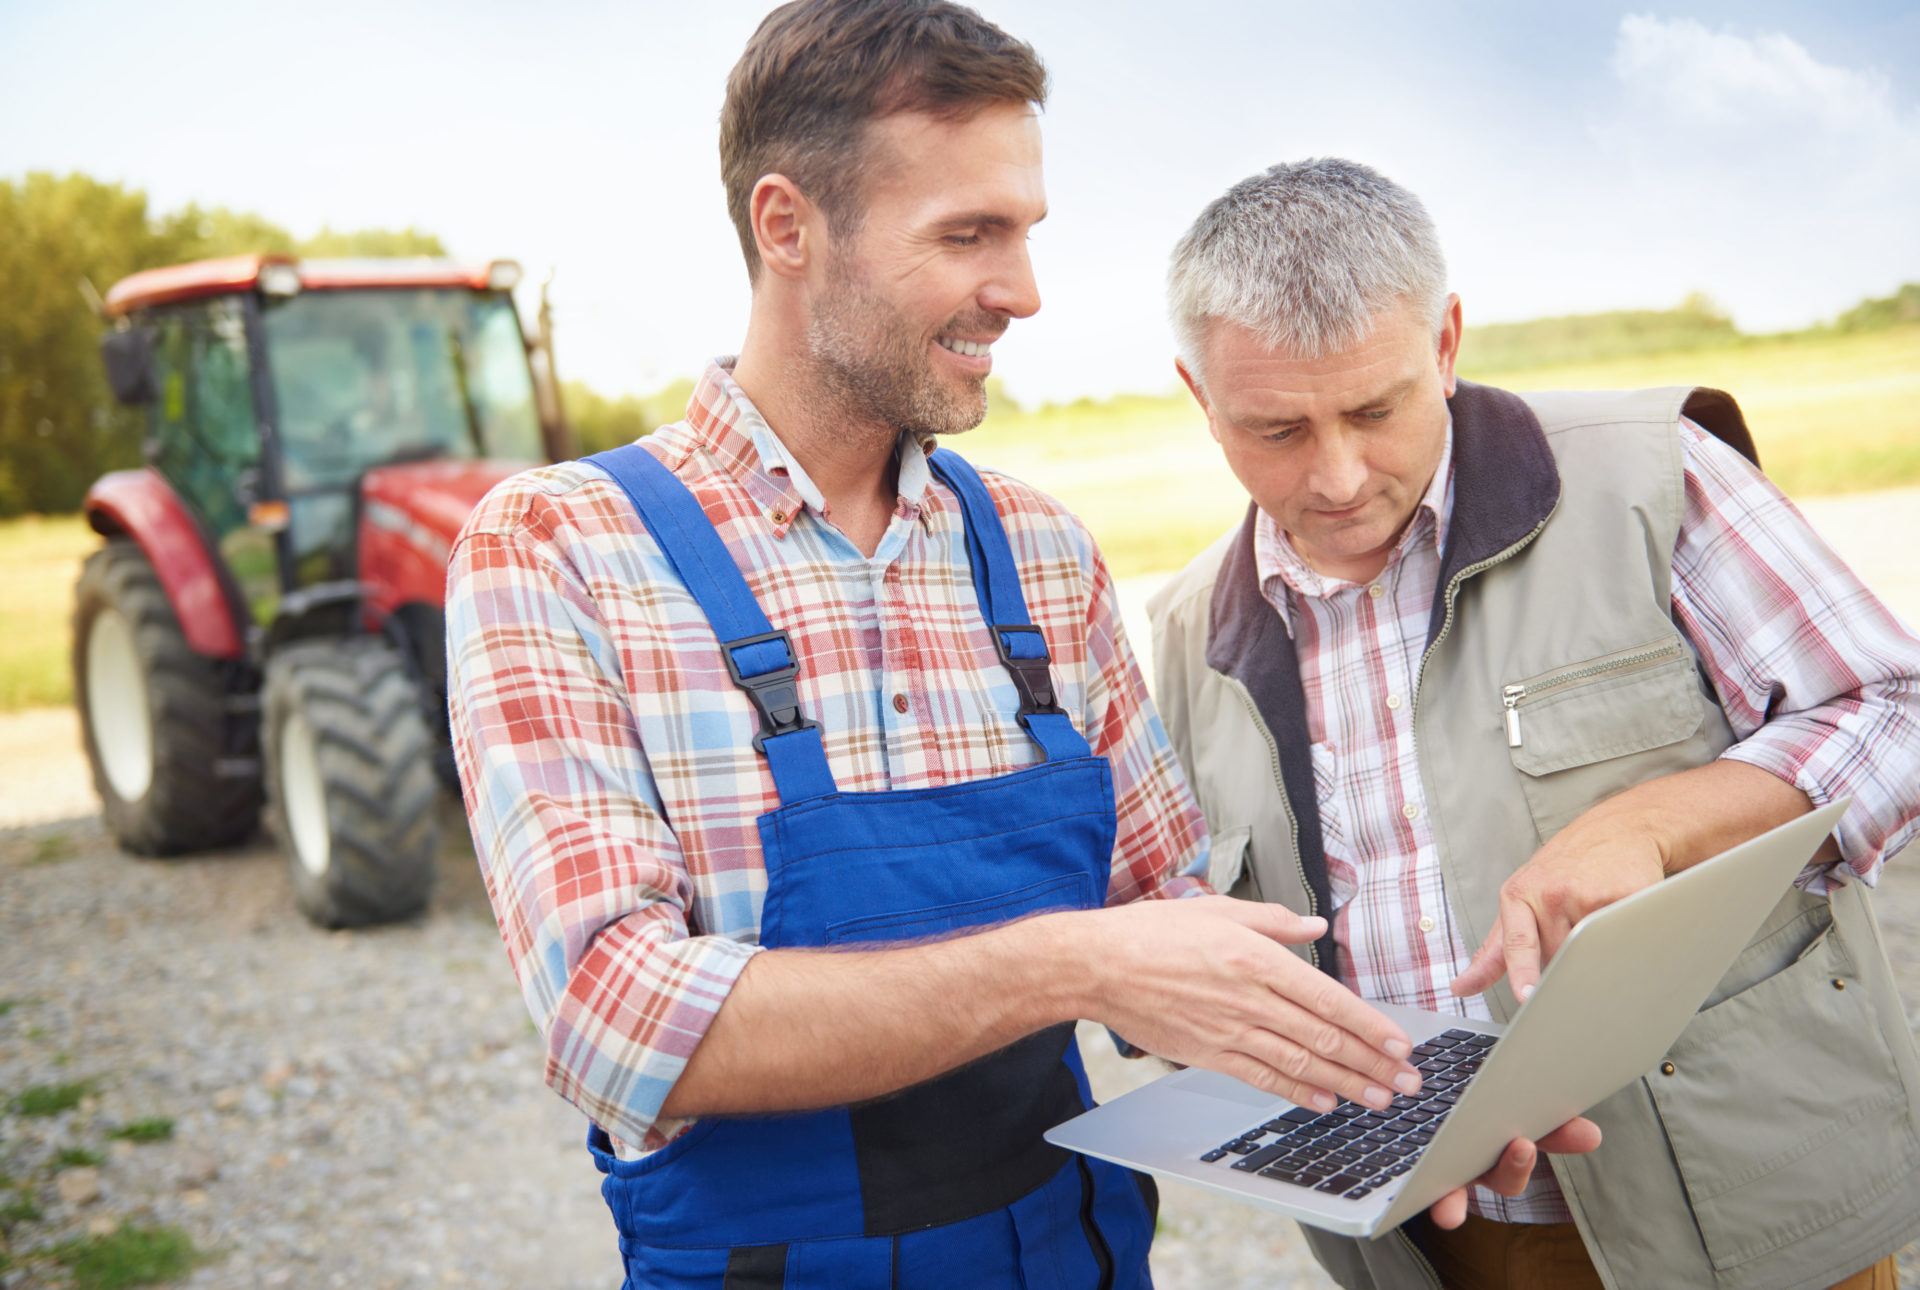 two men from the agricultural field who look at a laptop and a tractor can be seen in the background